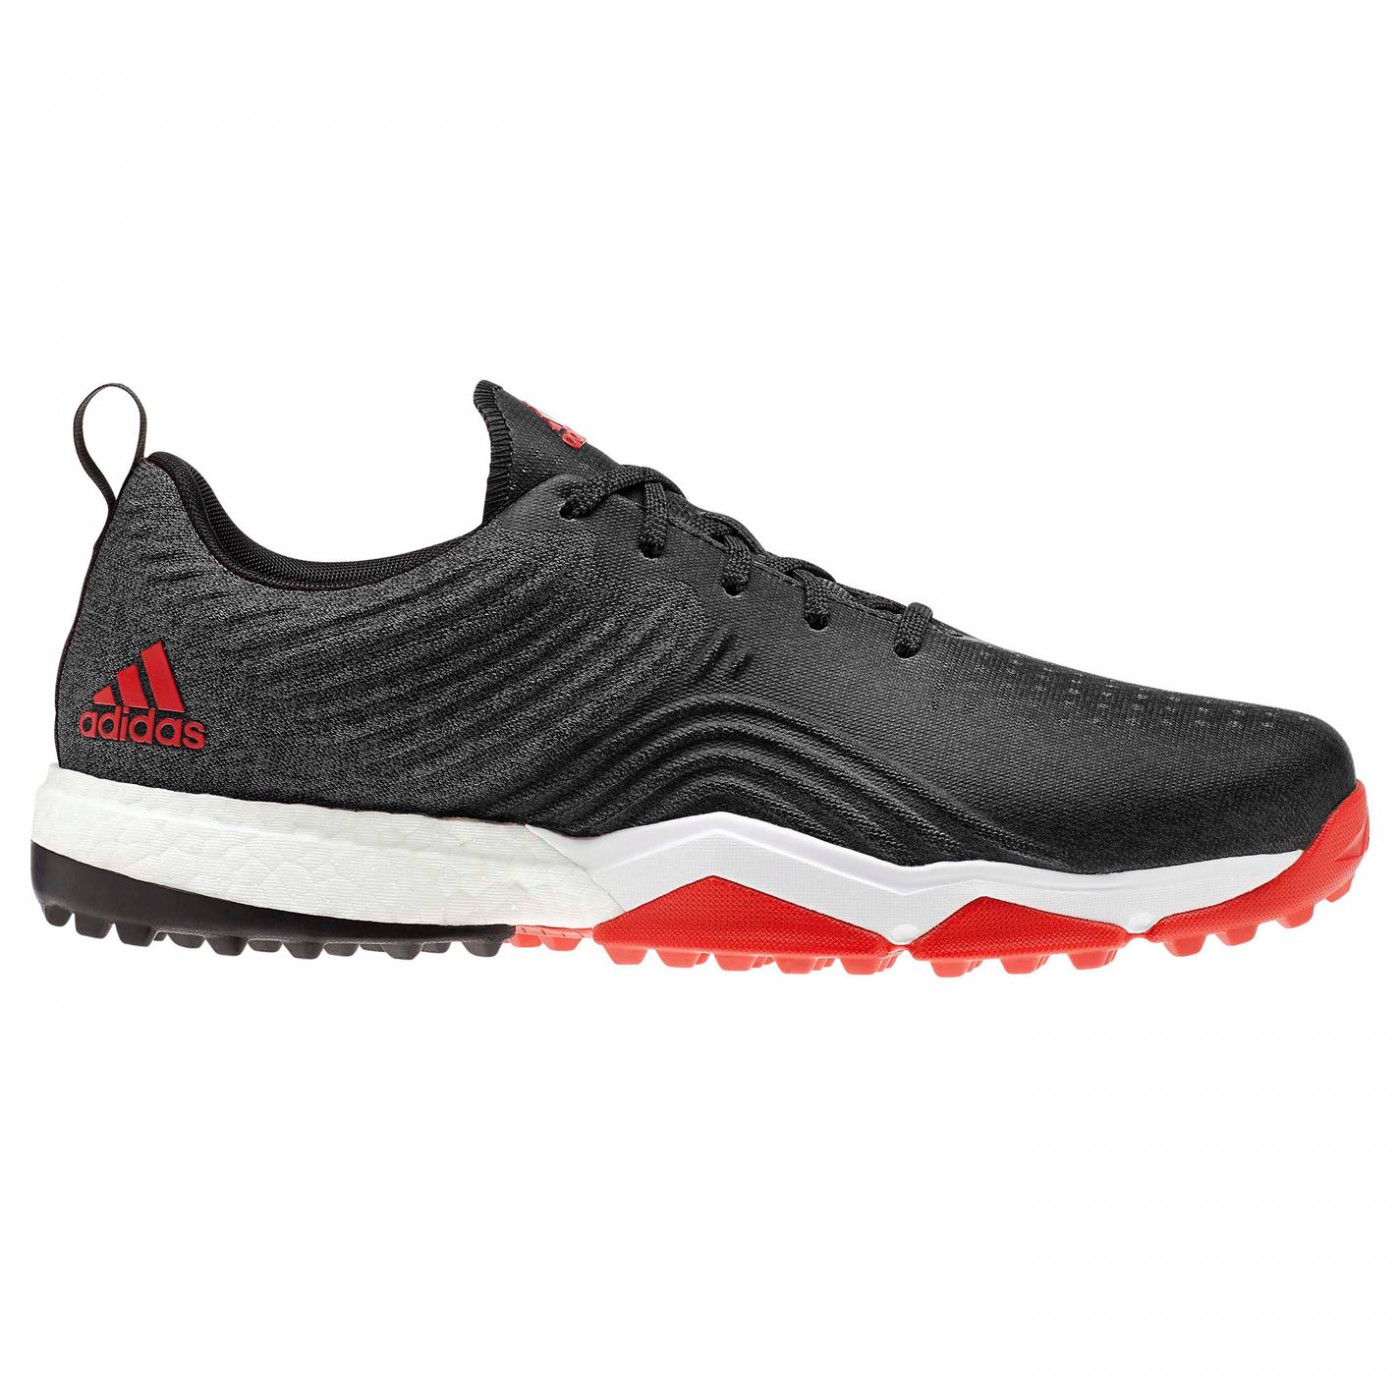 Adidas - adipower 4orged BOOST Mens Golf Shoes 900349cfc4